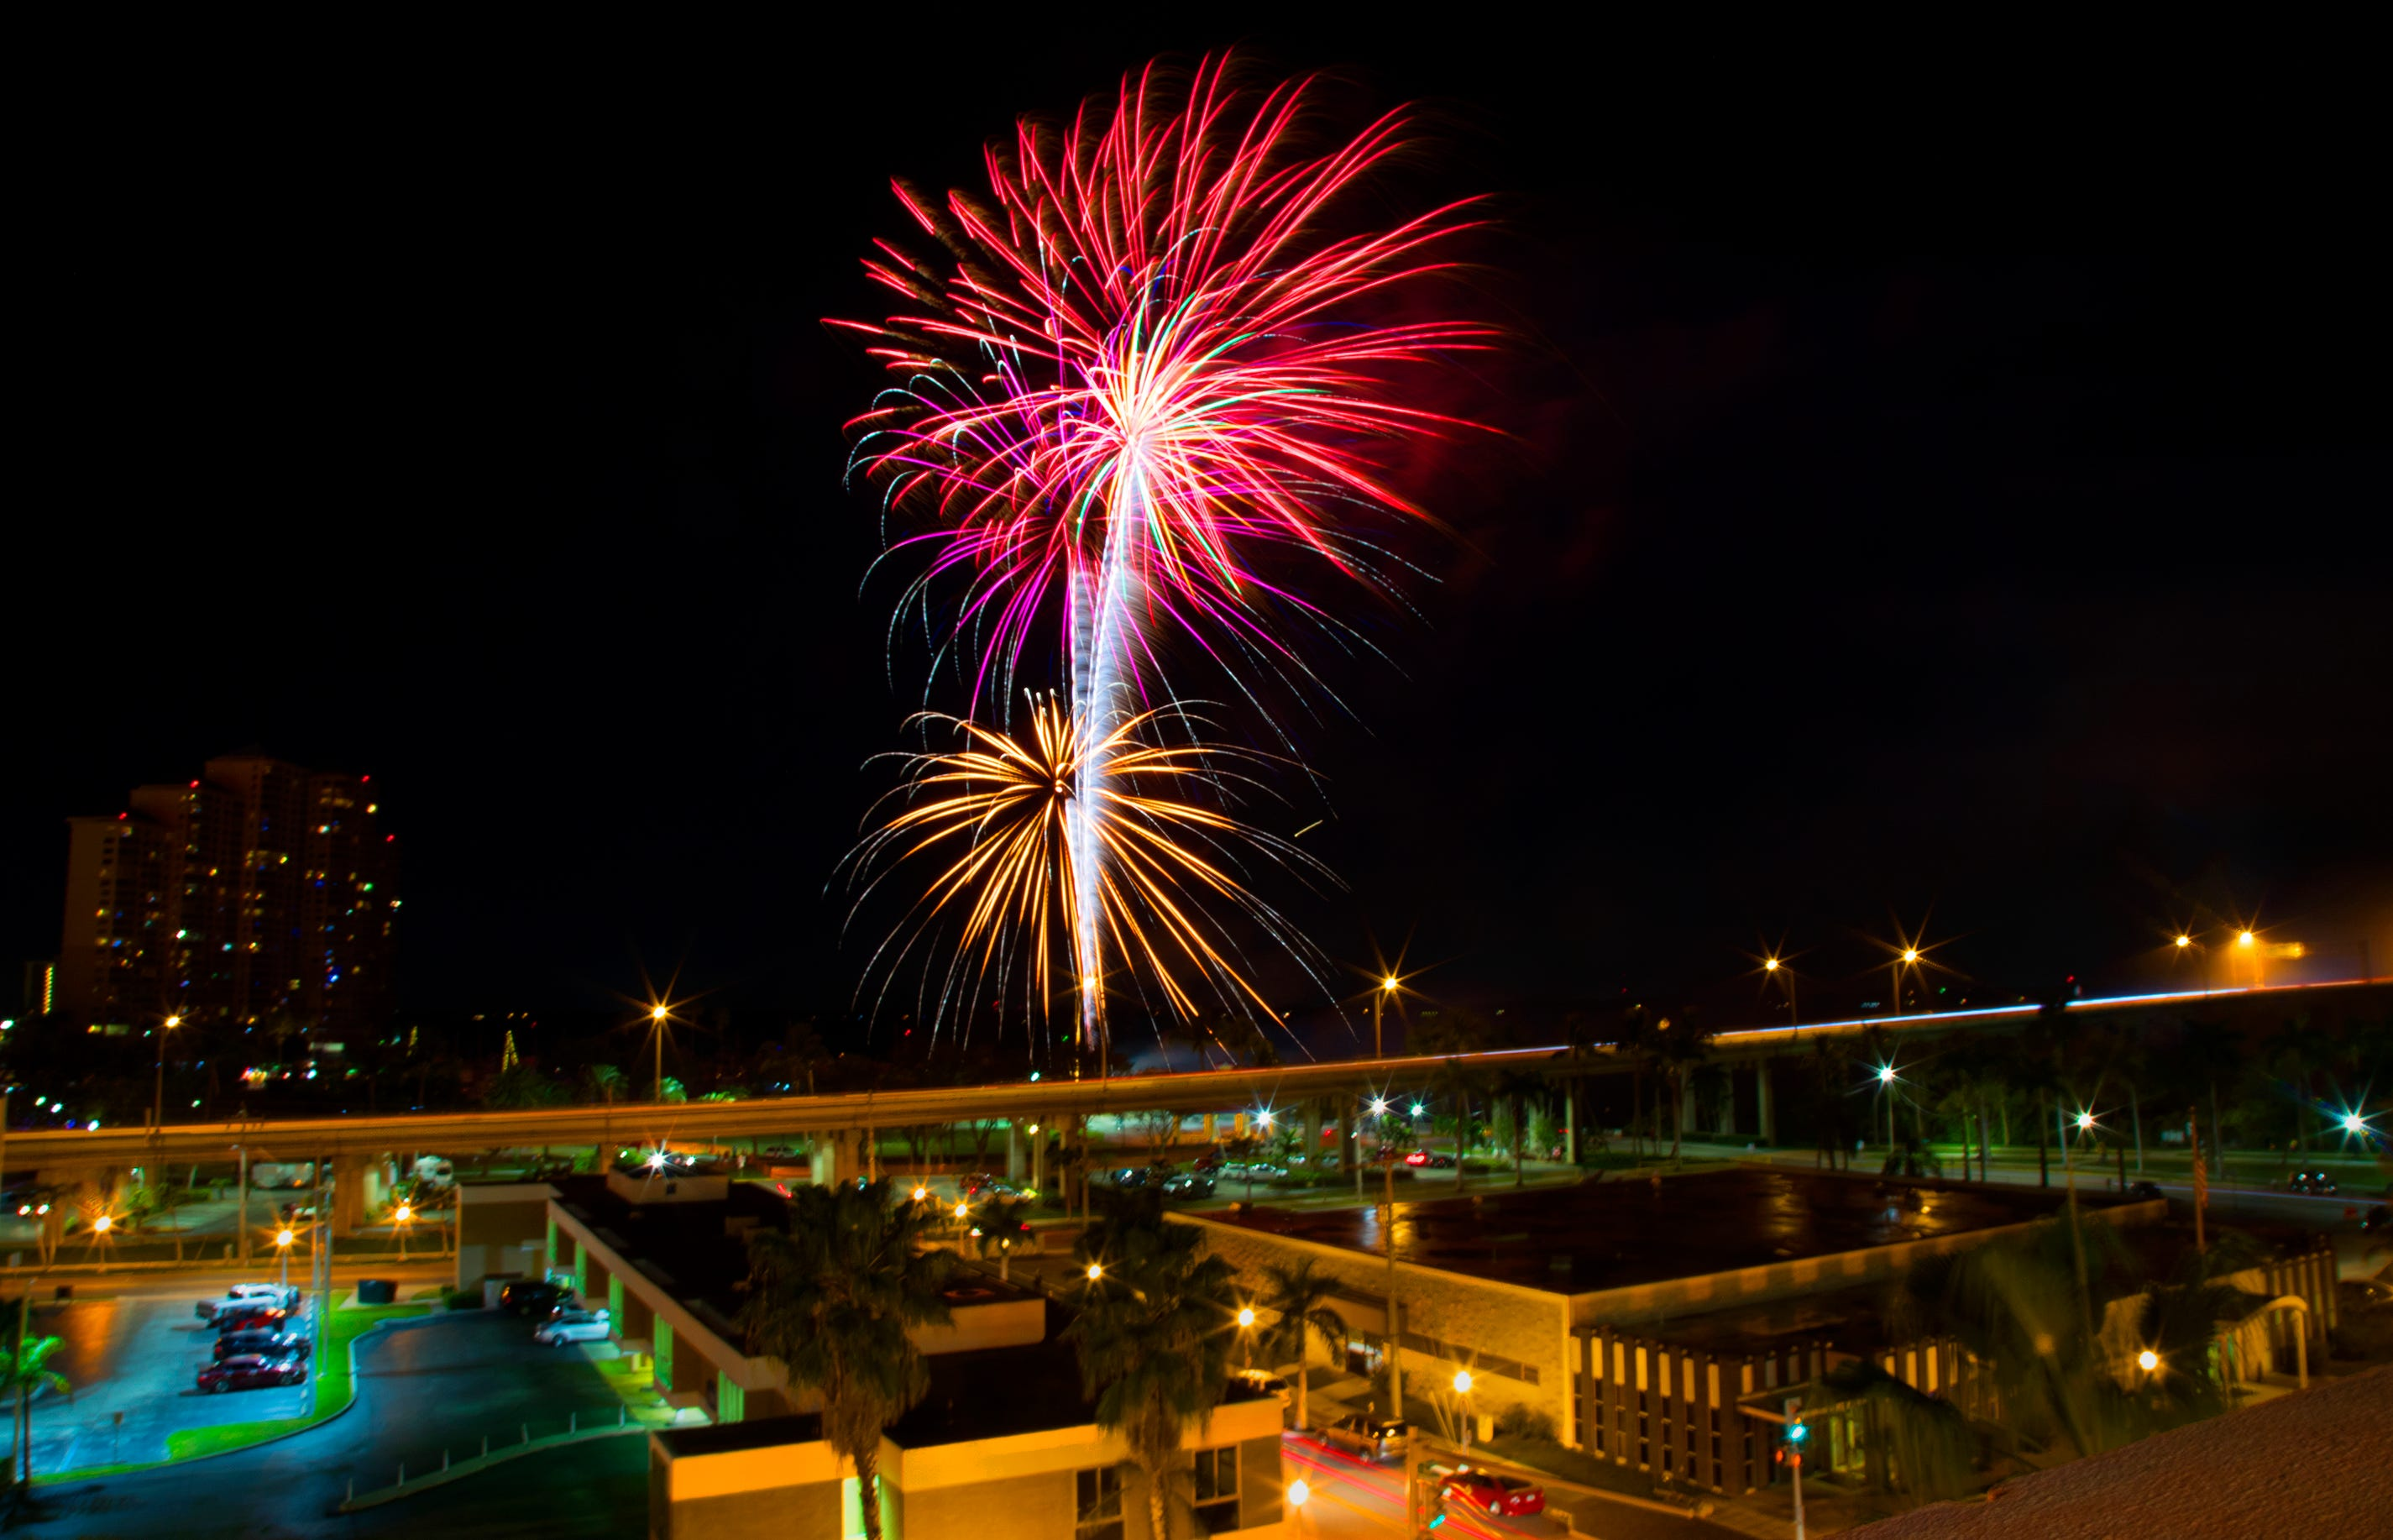 The Edison Festival of Light fireworks show illuminates Centennial Park recently in downtown Fort Myers.